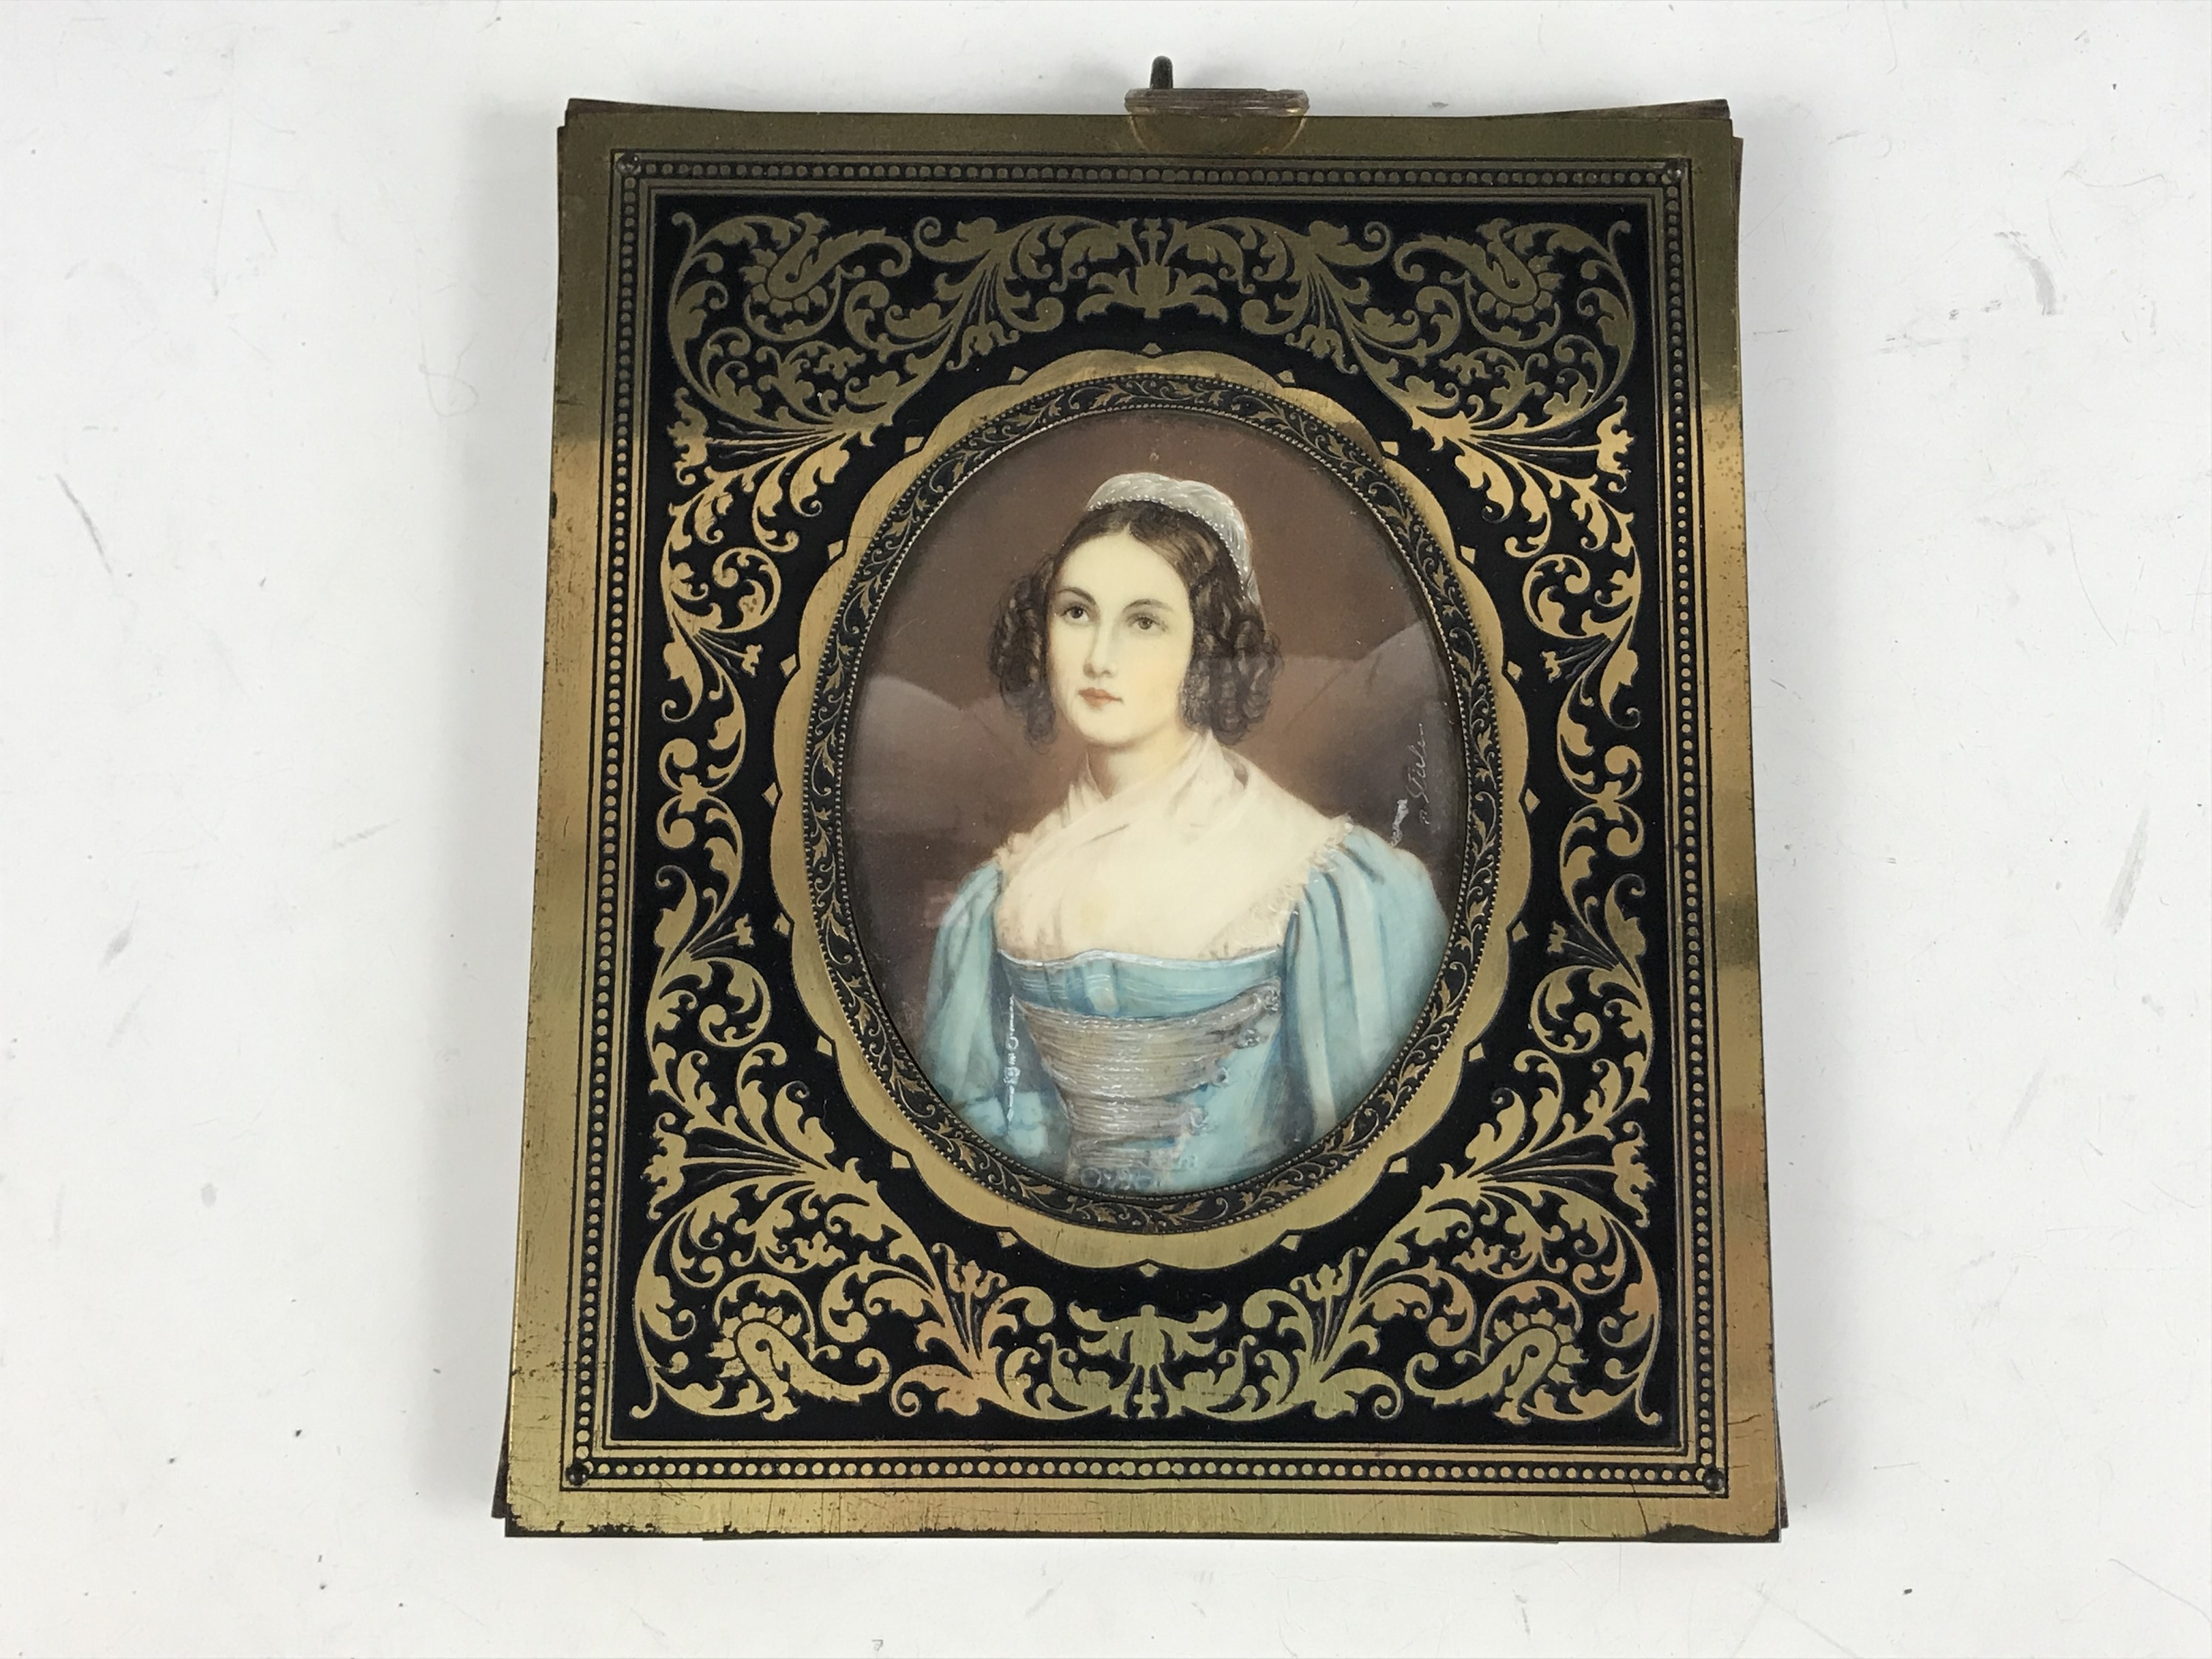 Lot 48 - M*** Stielen (20th Century) A portrait miniature of a young lady in 18th Century dress, wearing a